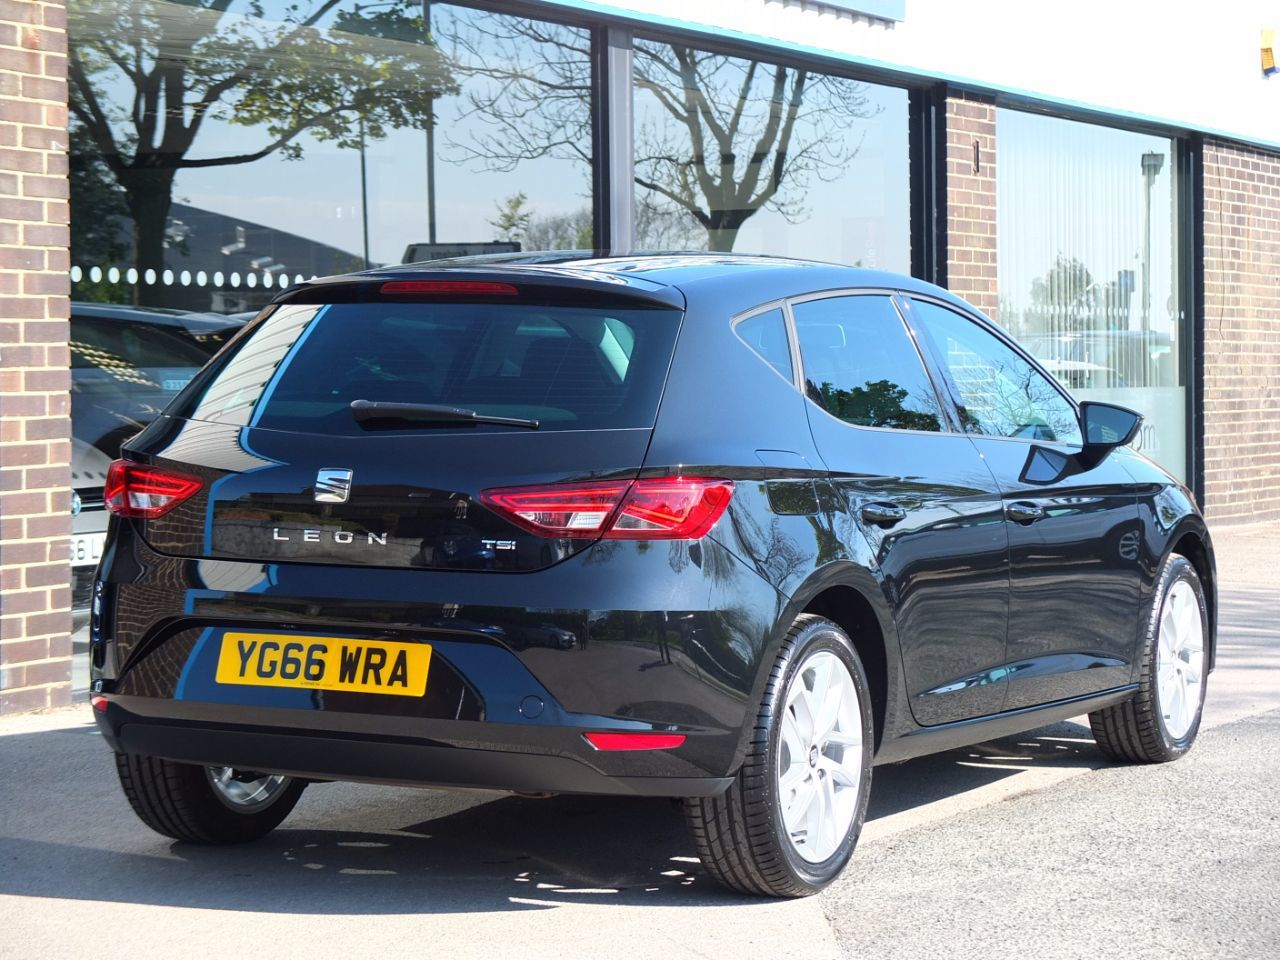 Seat Leon 1.2 TSI SE Dynamic Technology 5 door Hatchback Petrol Midnight Black Metallic